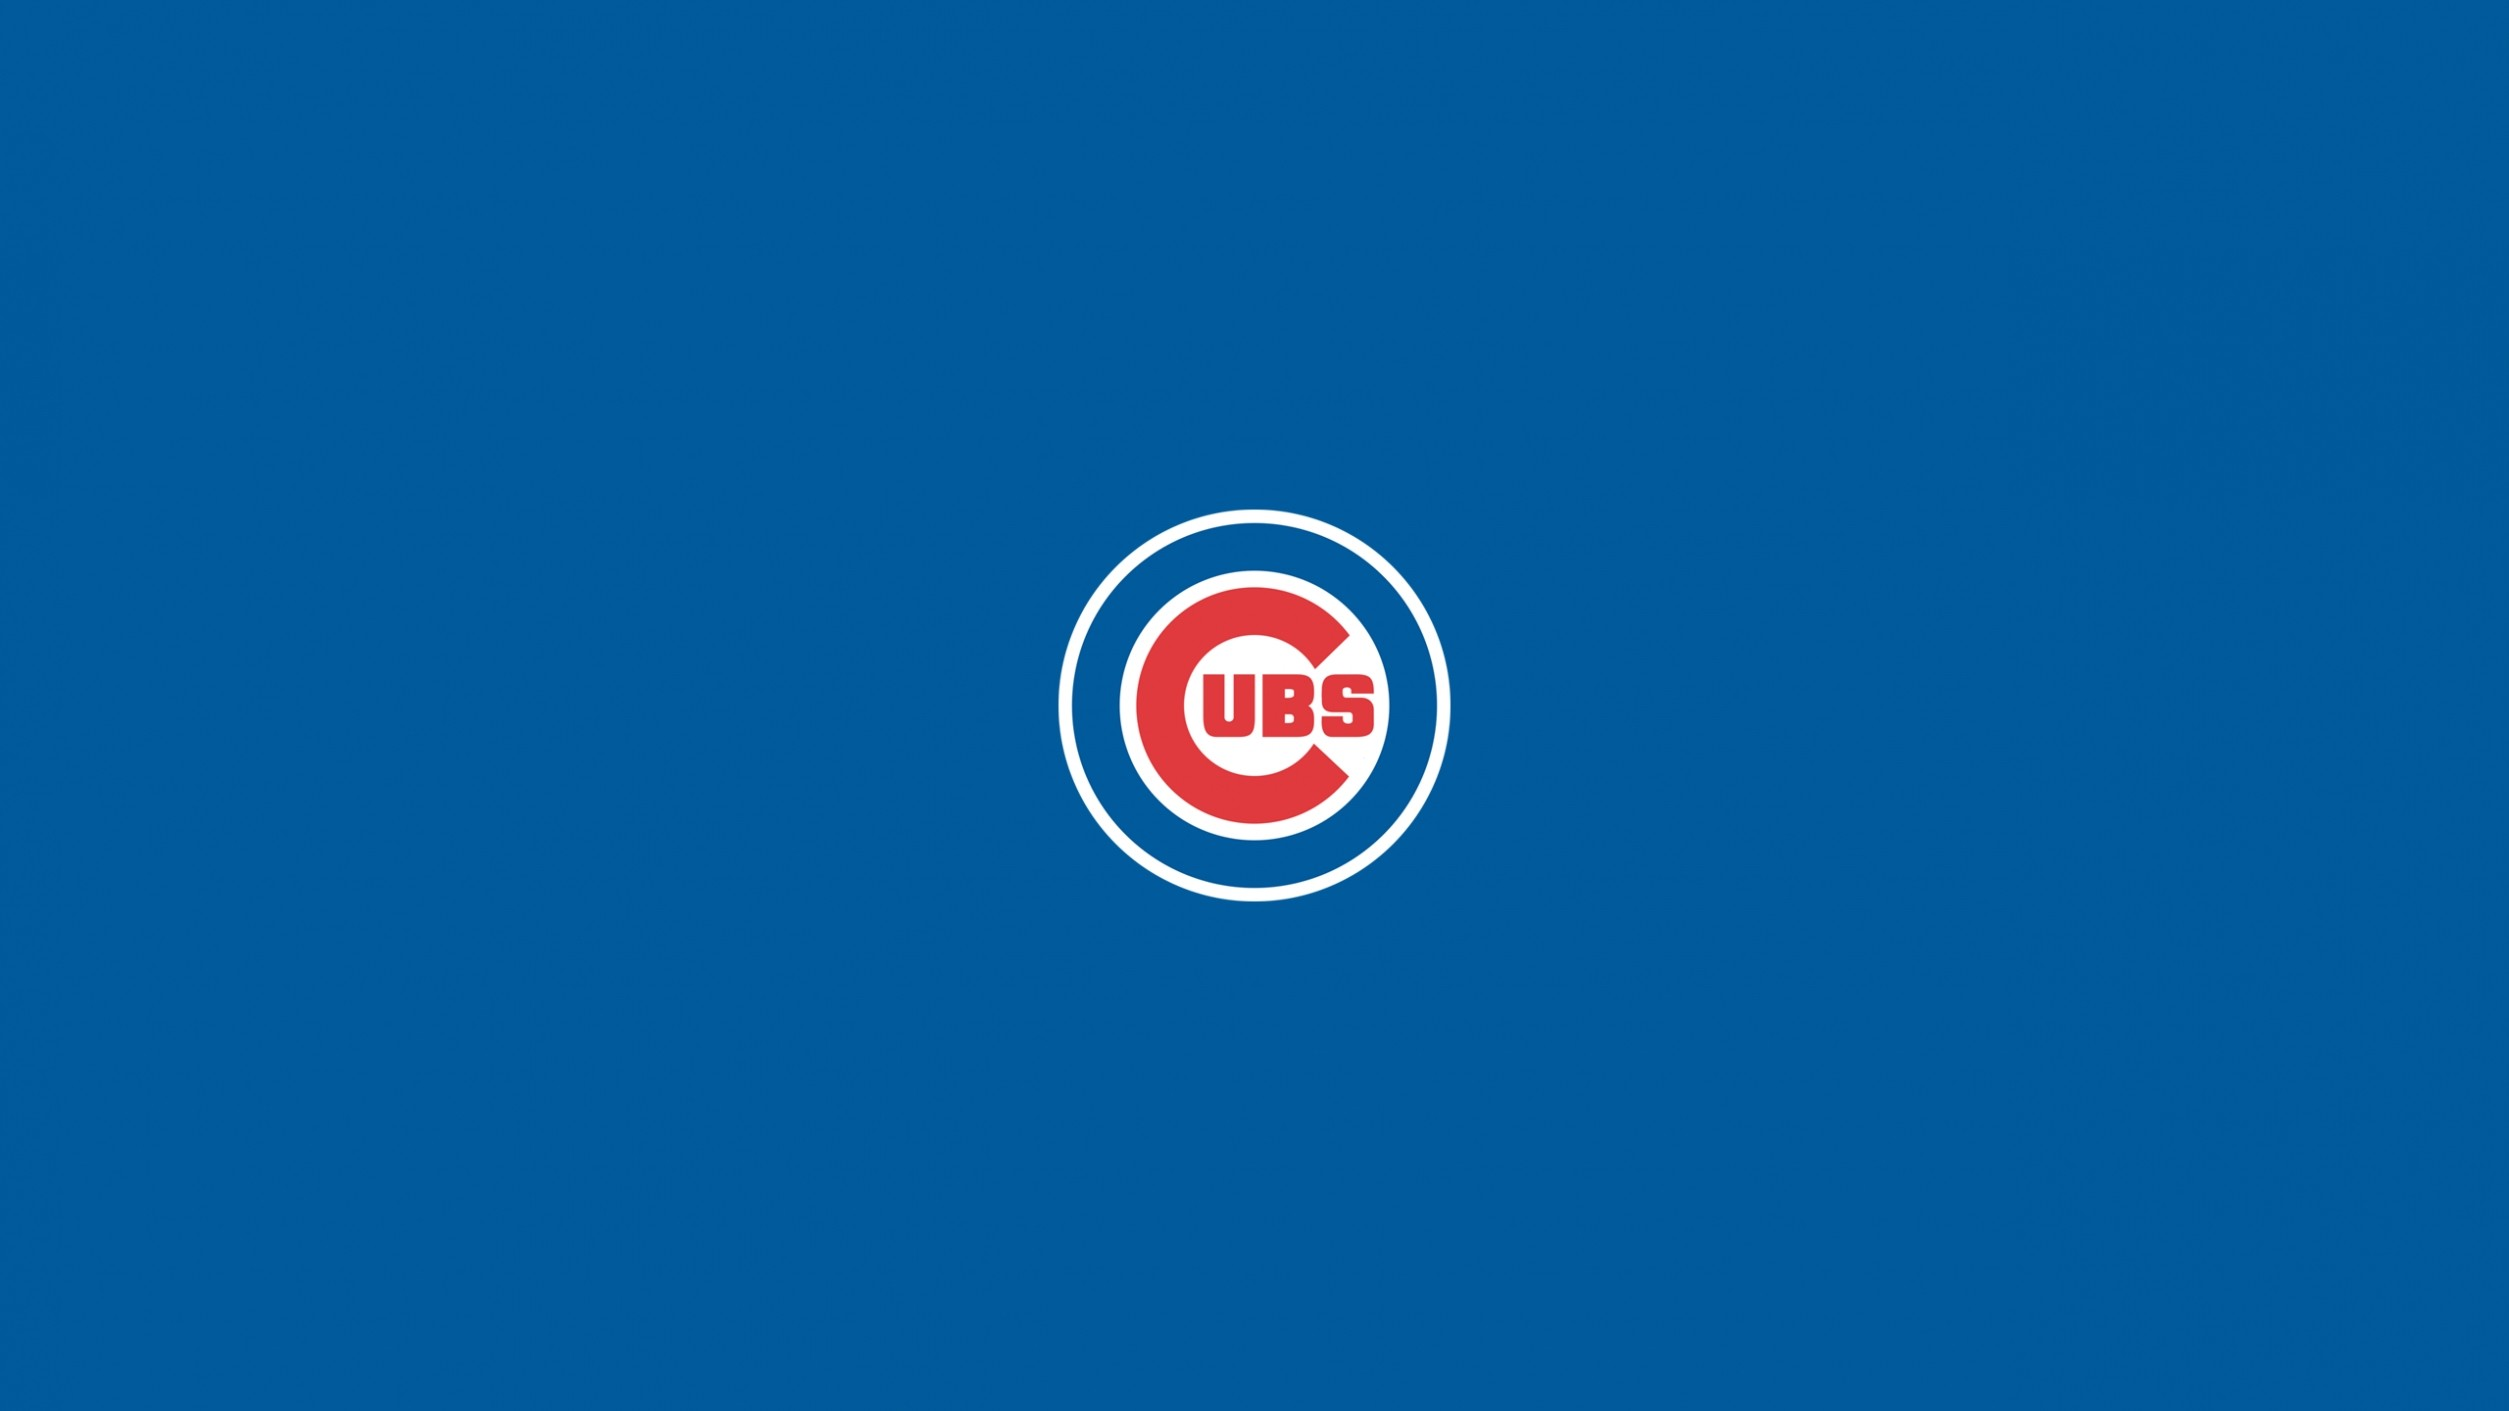 … chicago cubs wallpapers b1gbaseball com …